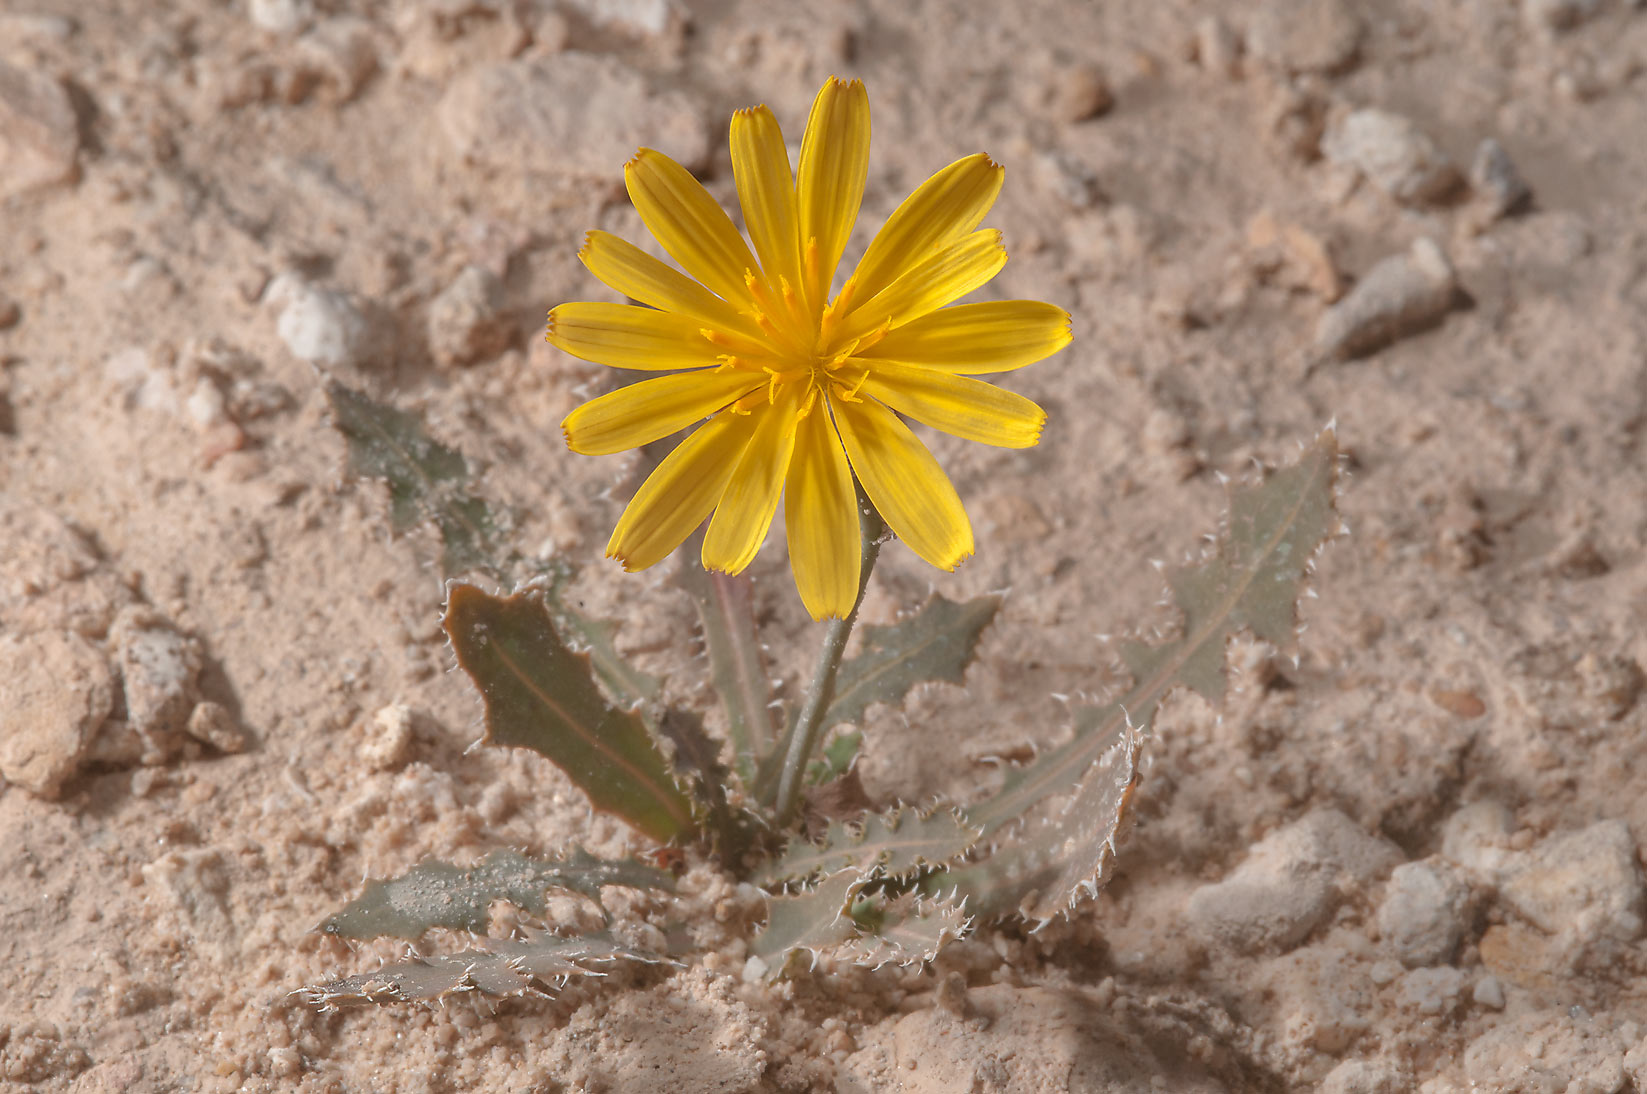 Yellow flower of Launaea mucronata (local name...of Ras Laffan, north from Doha. Qatar